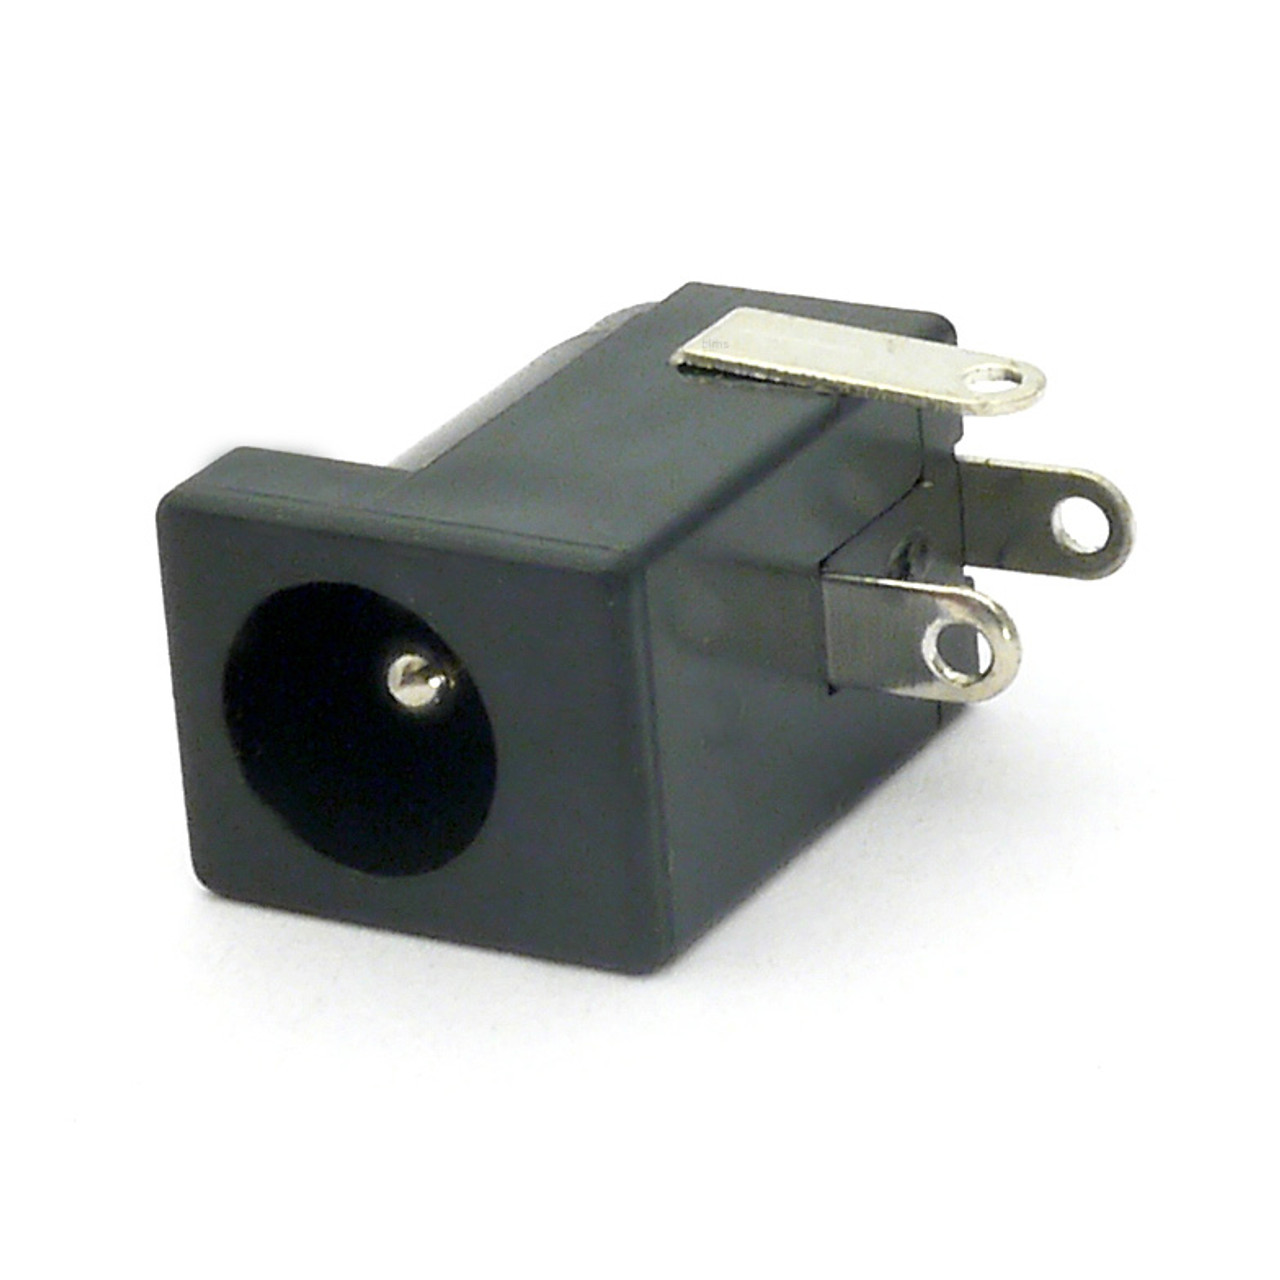 hight resolution of pcb mount dc power jack switchable works with batteries for stompbox building